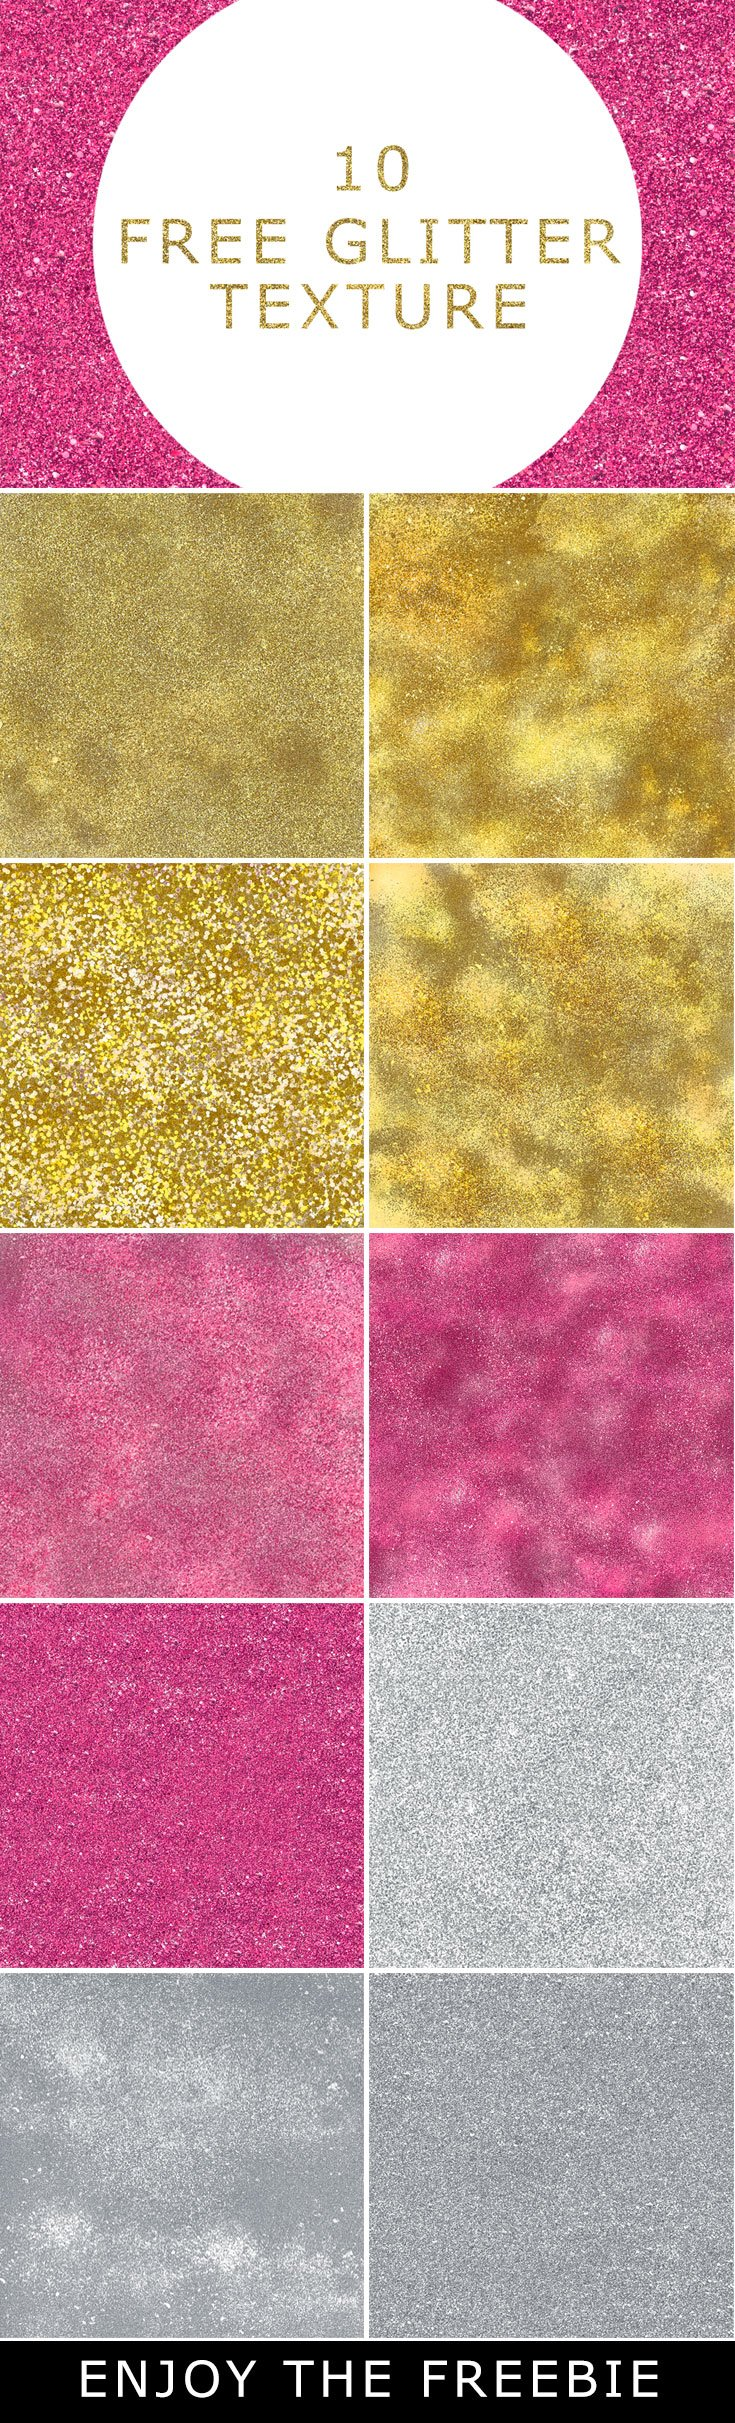 10 Free Glitter Textures have sparkly gold, rose gold and silver glitter textures effects, these are ideal for backgrounds and overlaying on text or shapes.